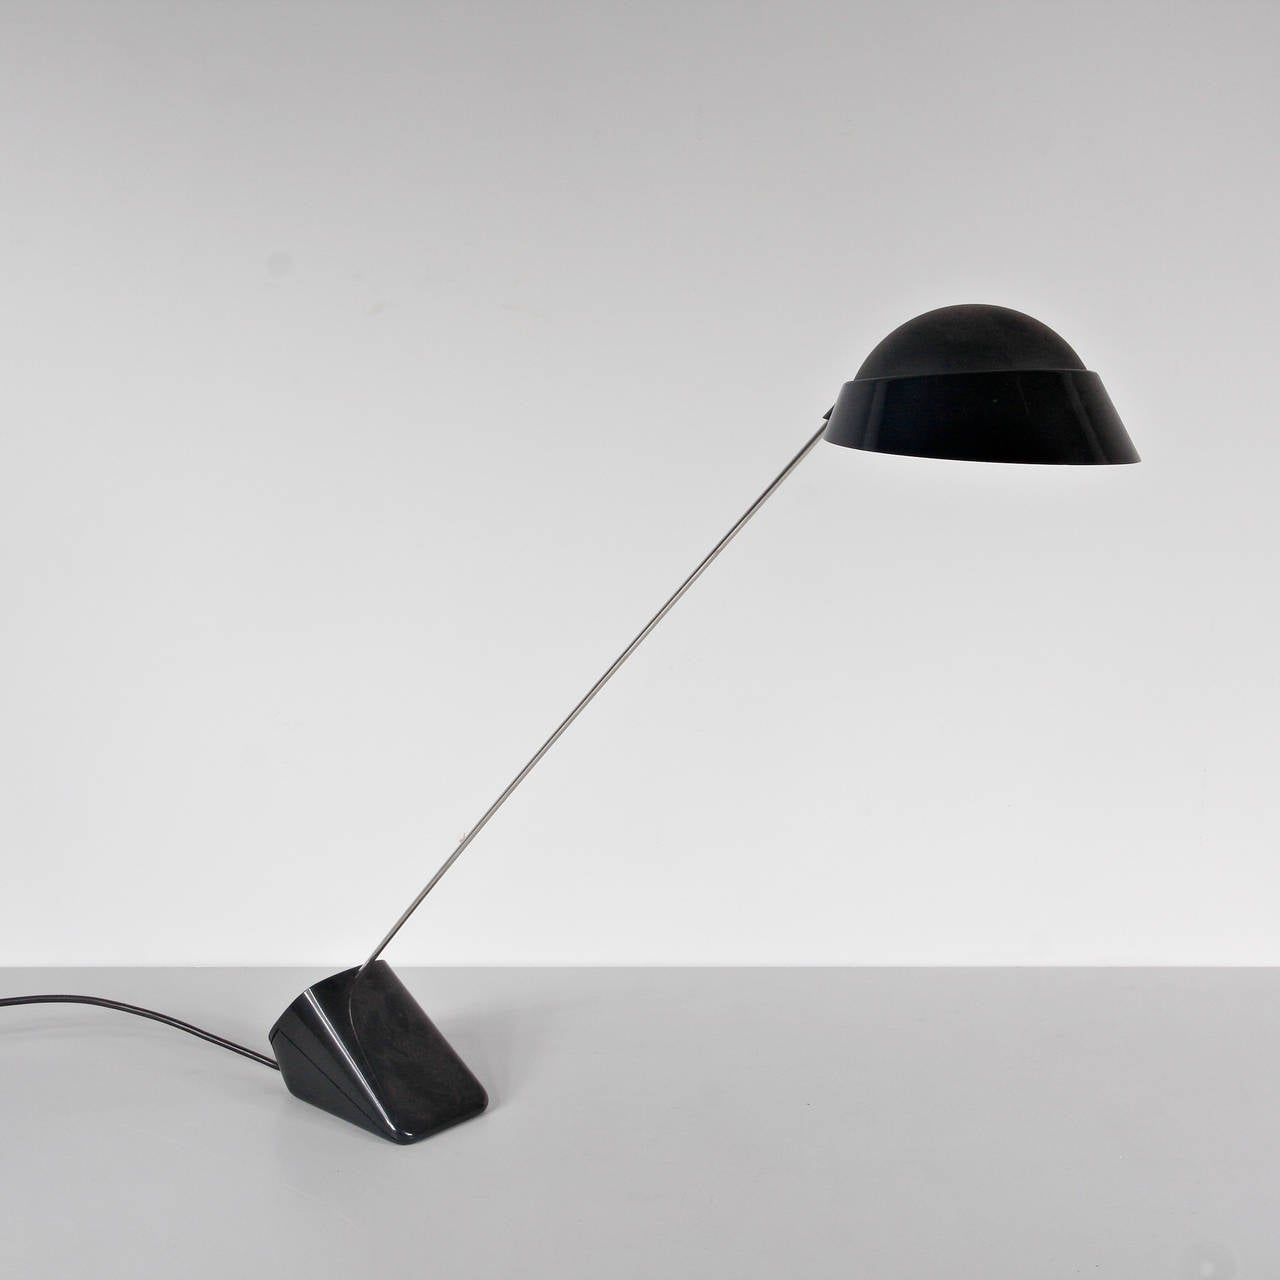 """1970s """"Ipotenusa 630"""" desk lamp designed by Achille Castiglioni, manufactured by Flos in Italy"""